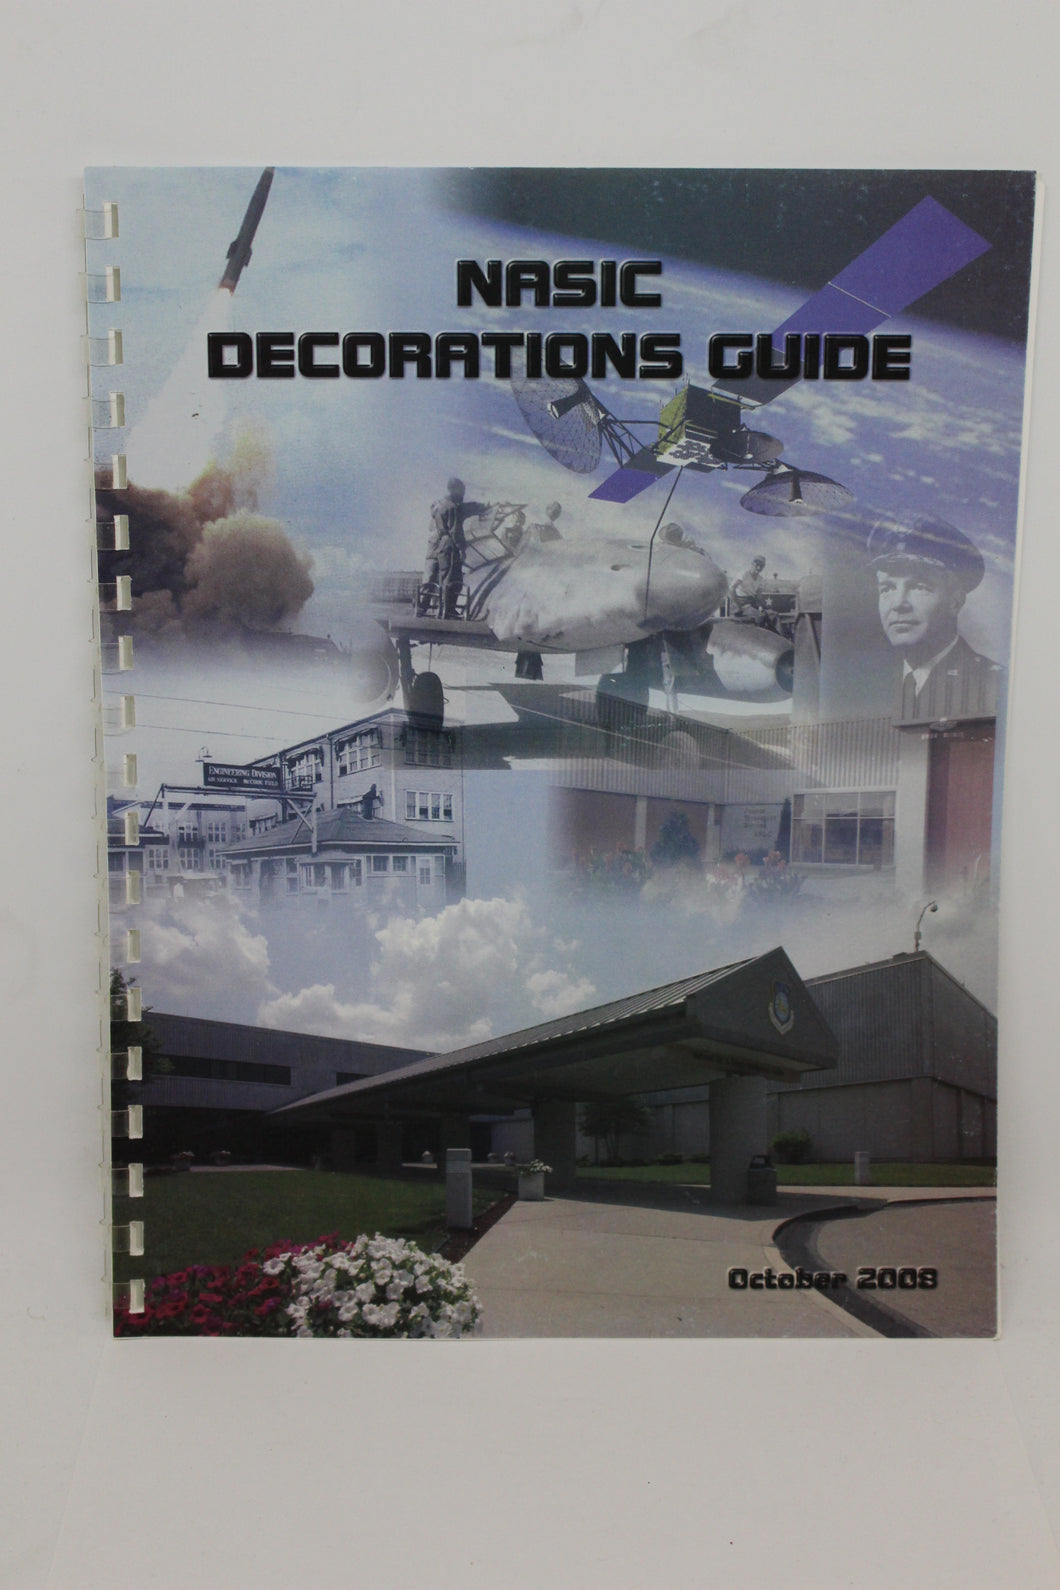 NASIC Decorations Guide, Oct 2008